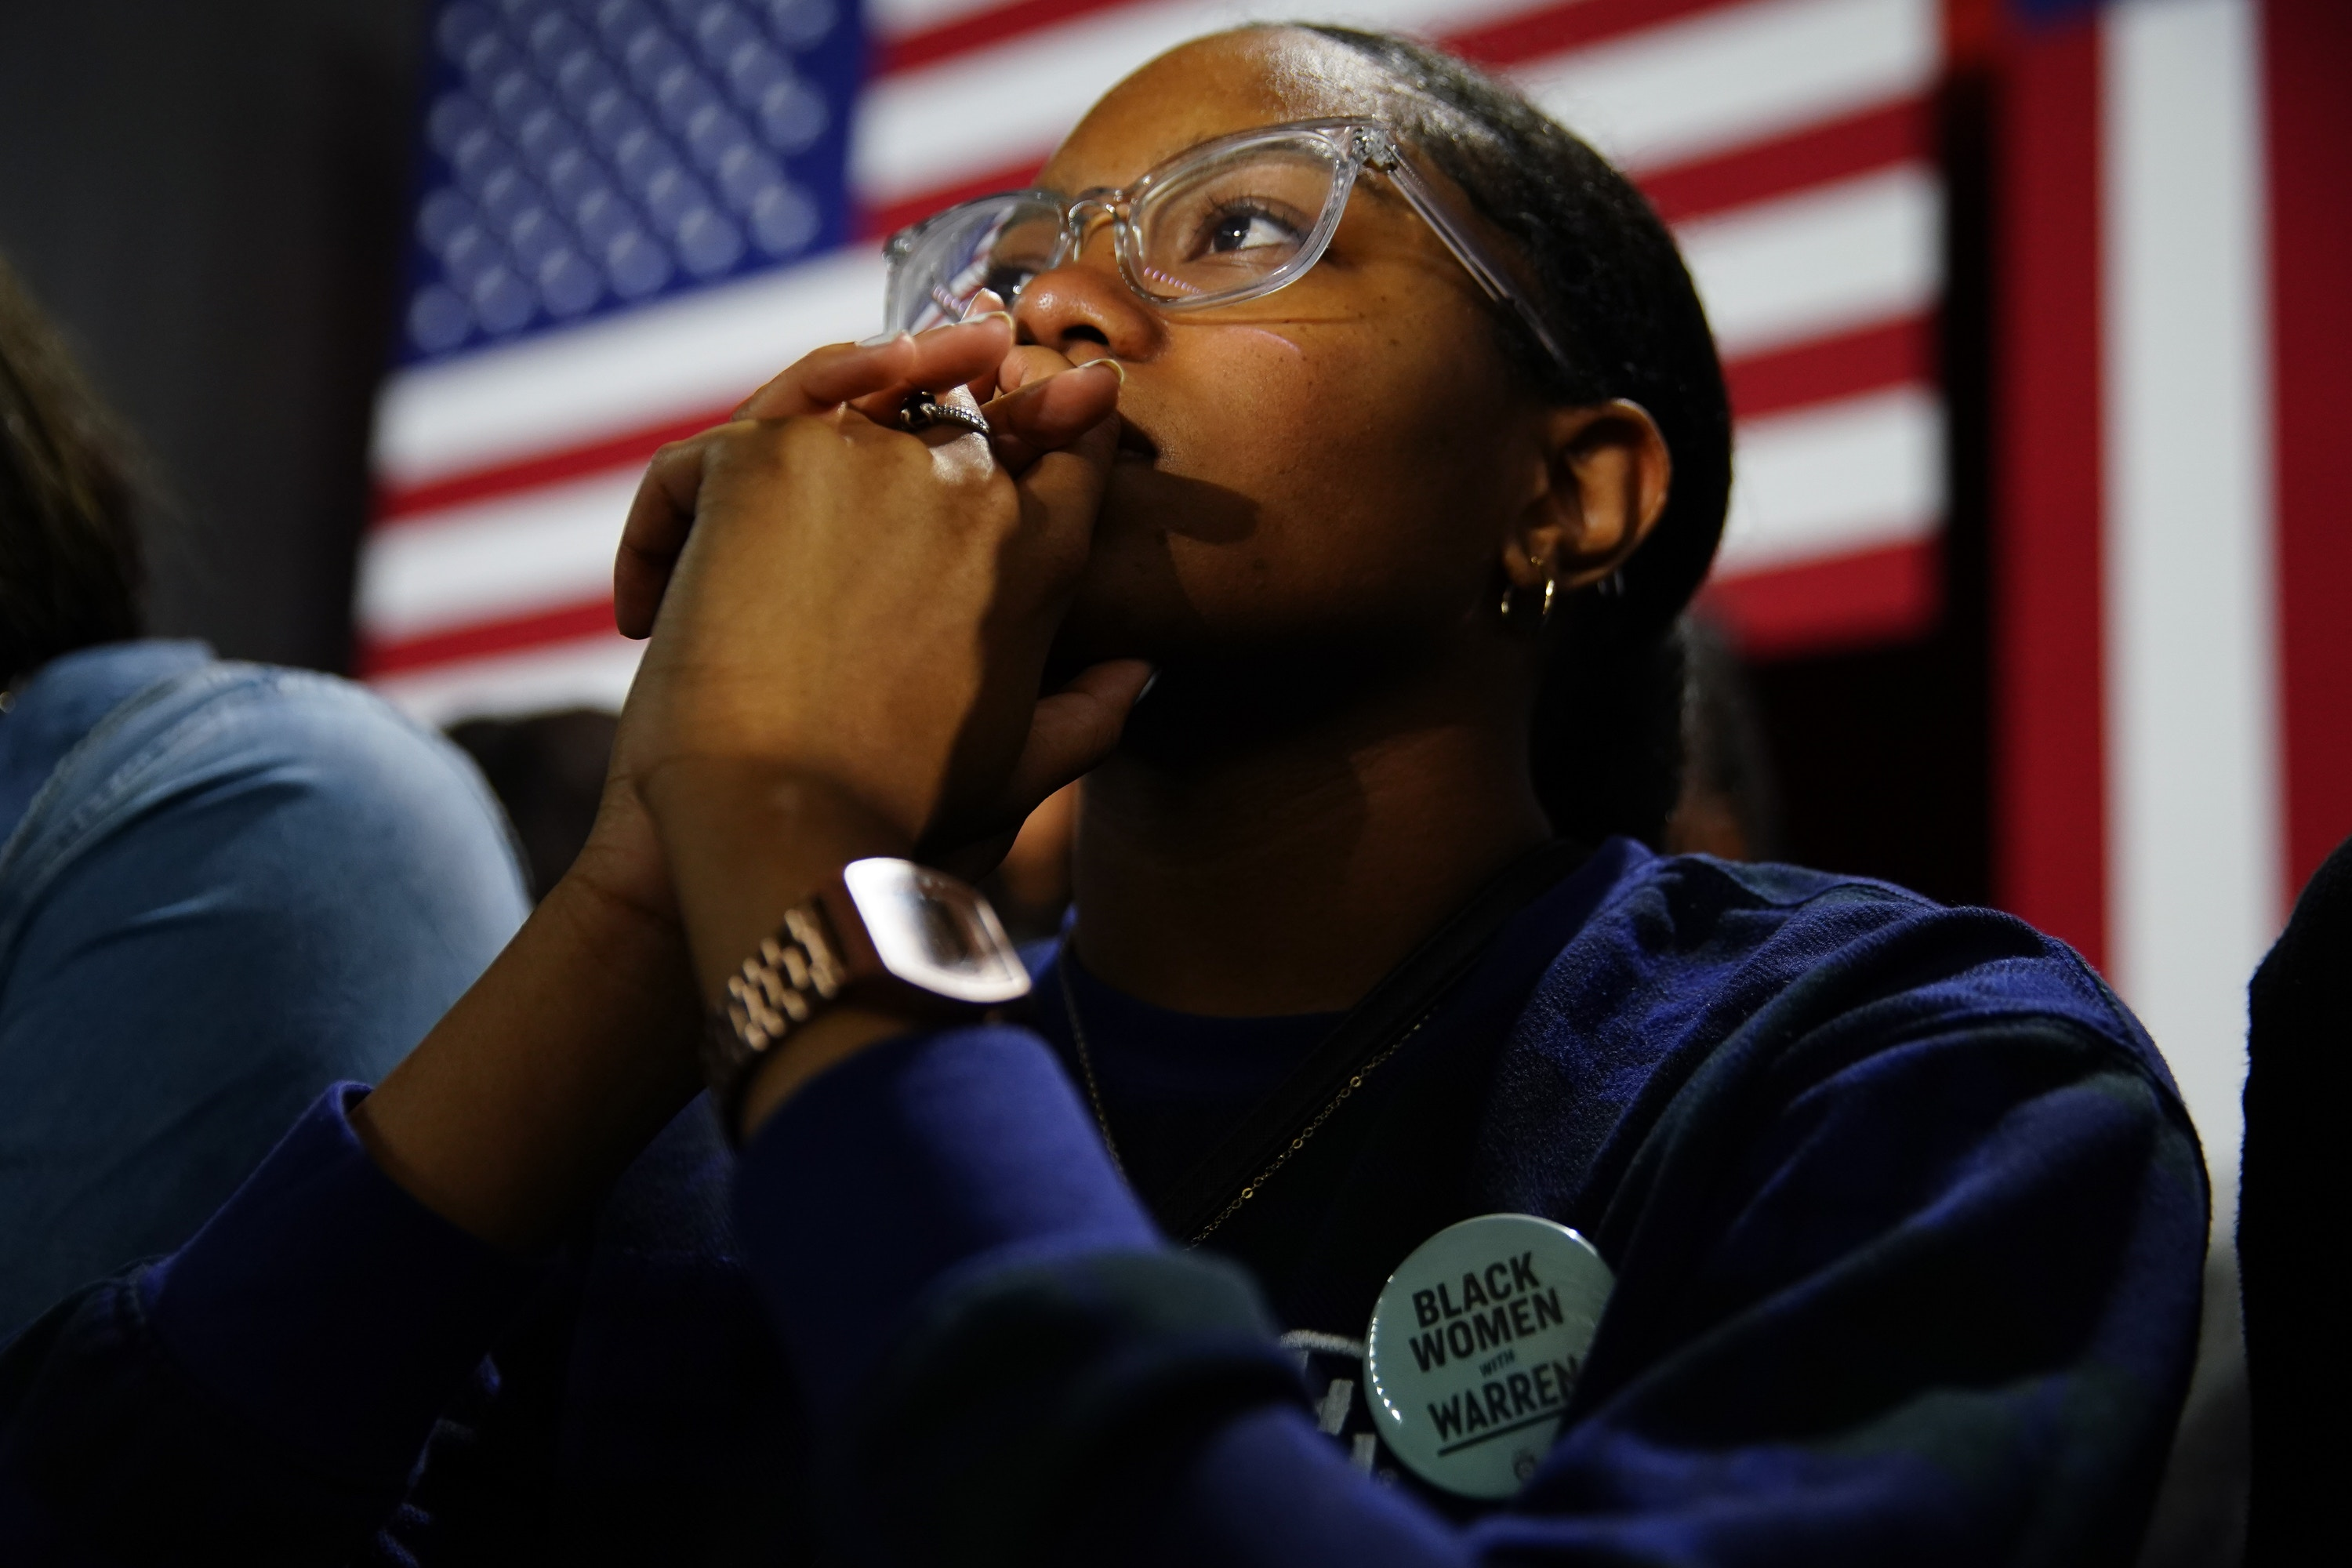 ATLANTA, GA - NOVEMBER 21: An attendee wears a button supporting Sen. Elizabeth Warren (D-MA), at a campaign event at Clark Atlanta University on November 21, 2019 in Atlanta, Georgia. Warren spoke about workers' rights, fighting voter suppression and the accomplishments of Black women activists. (Photo by Elijah Nouvelage/Getty Images)